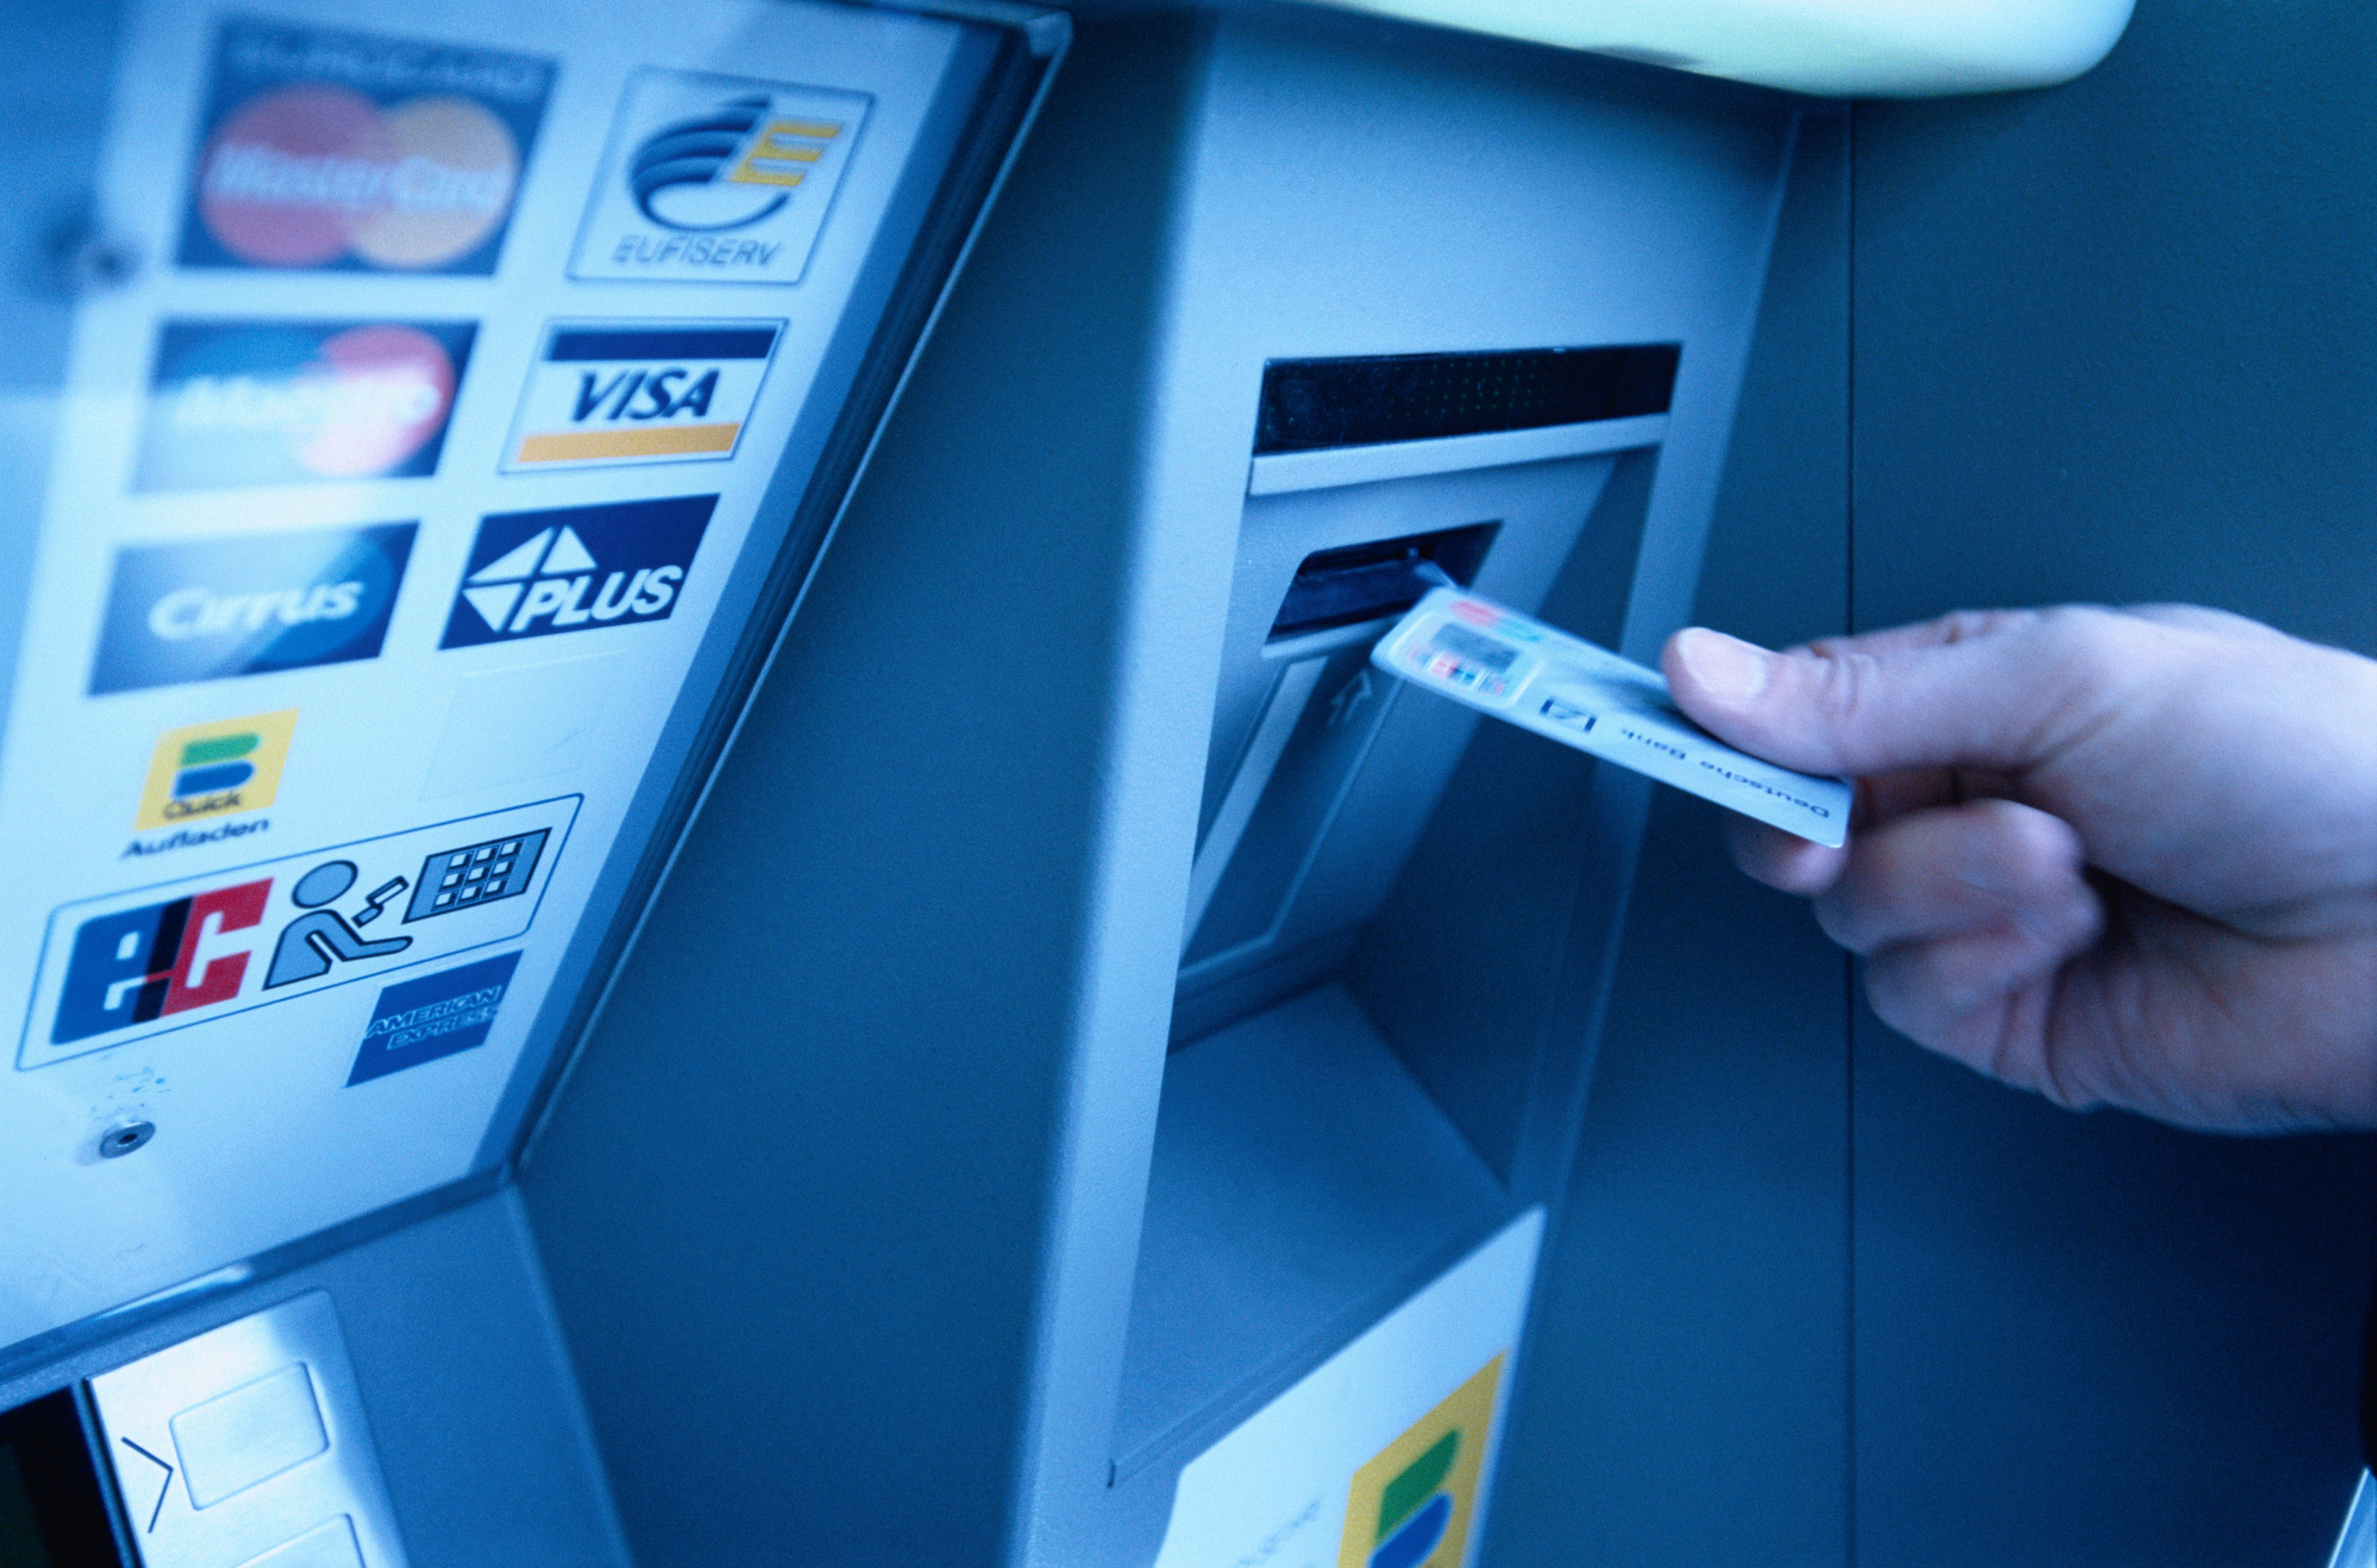 Paying online with credit card securely